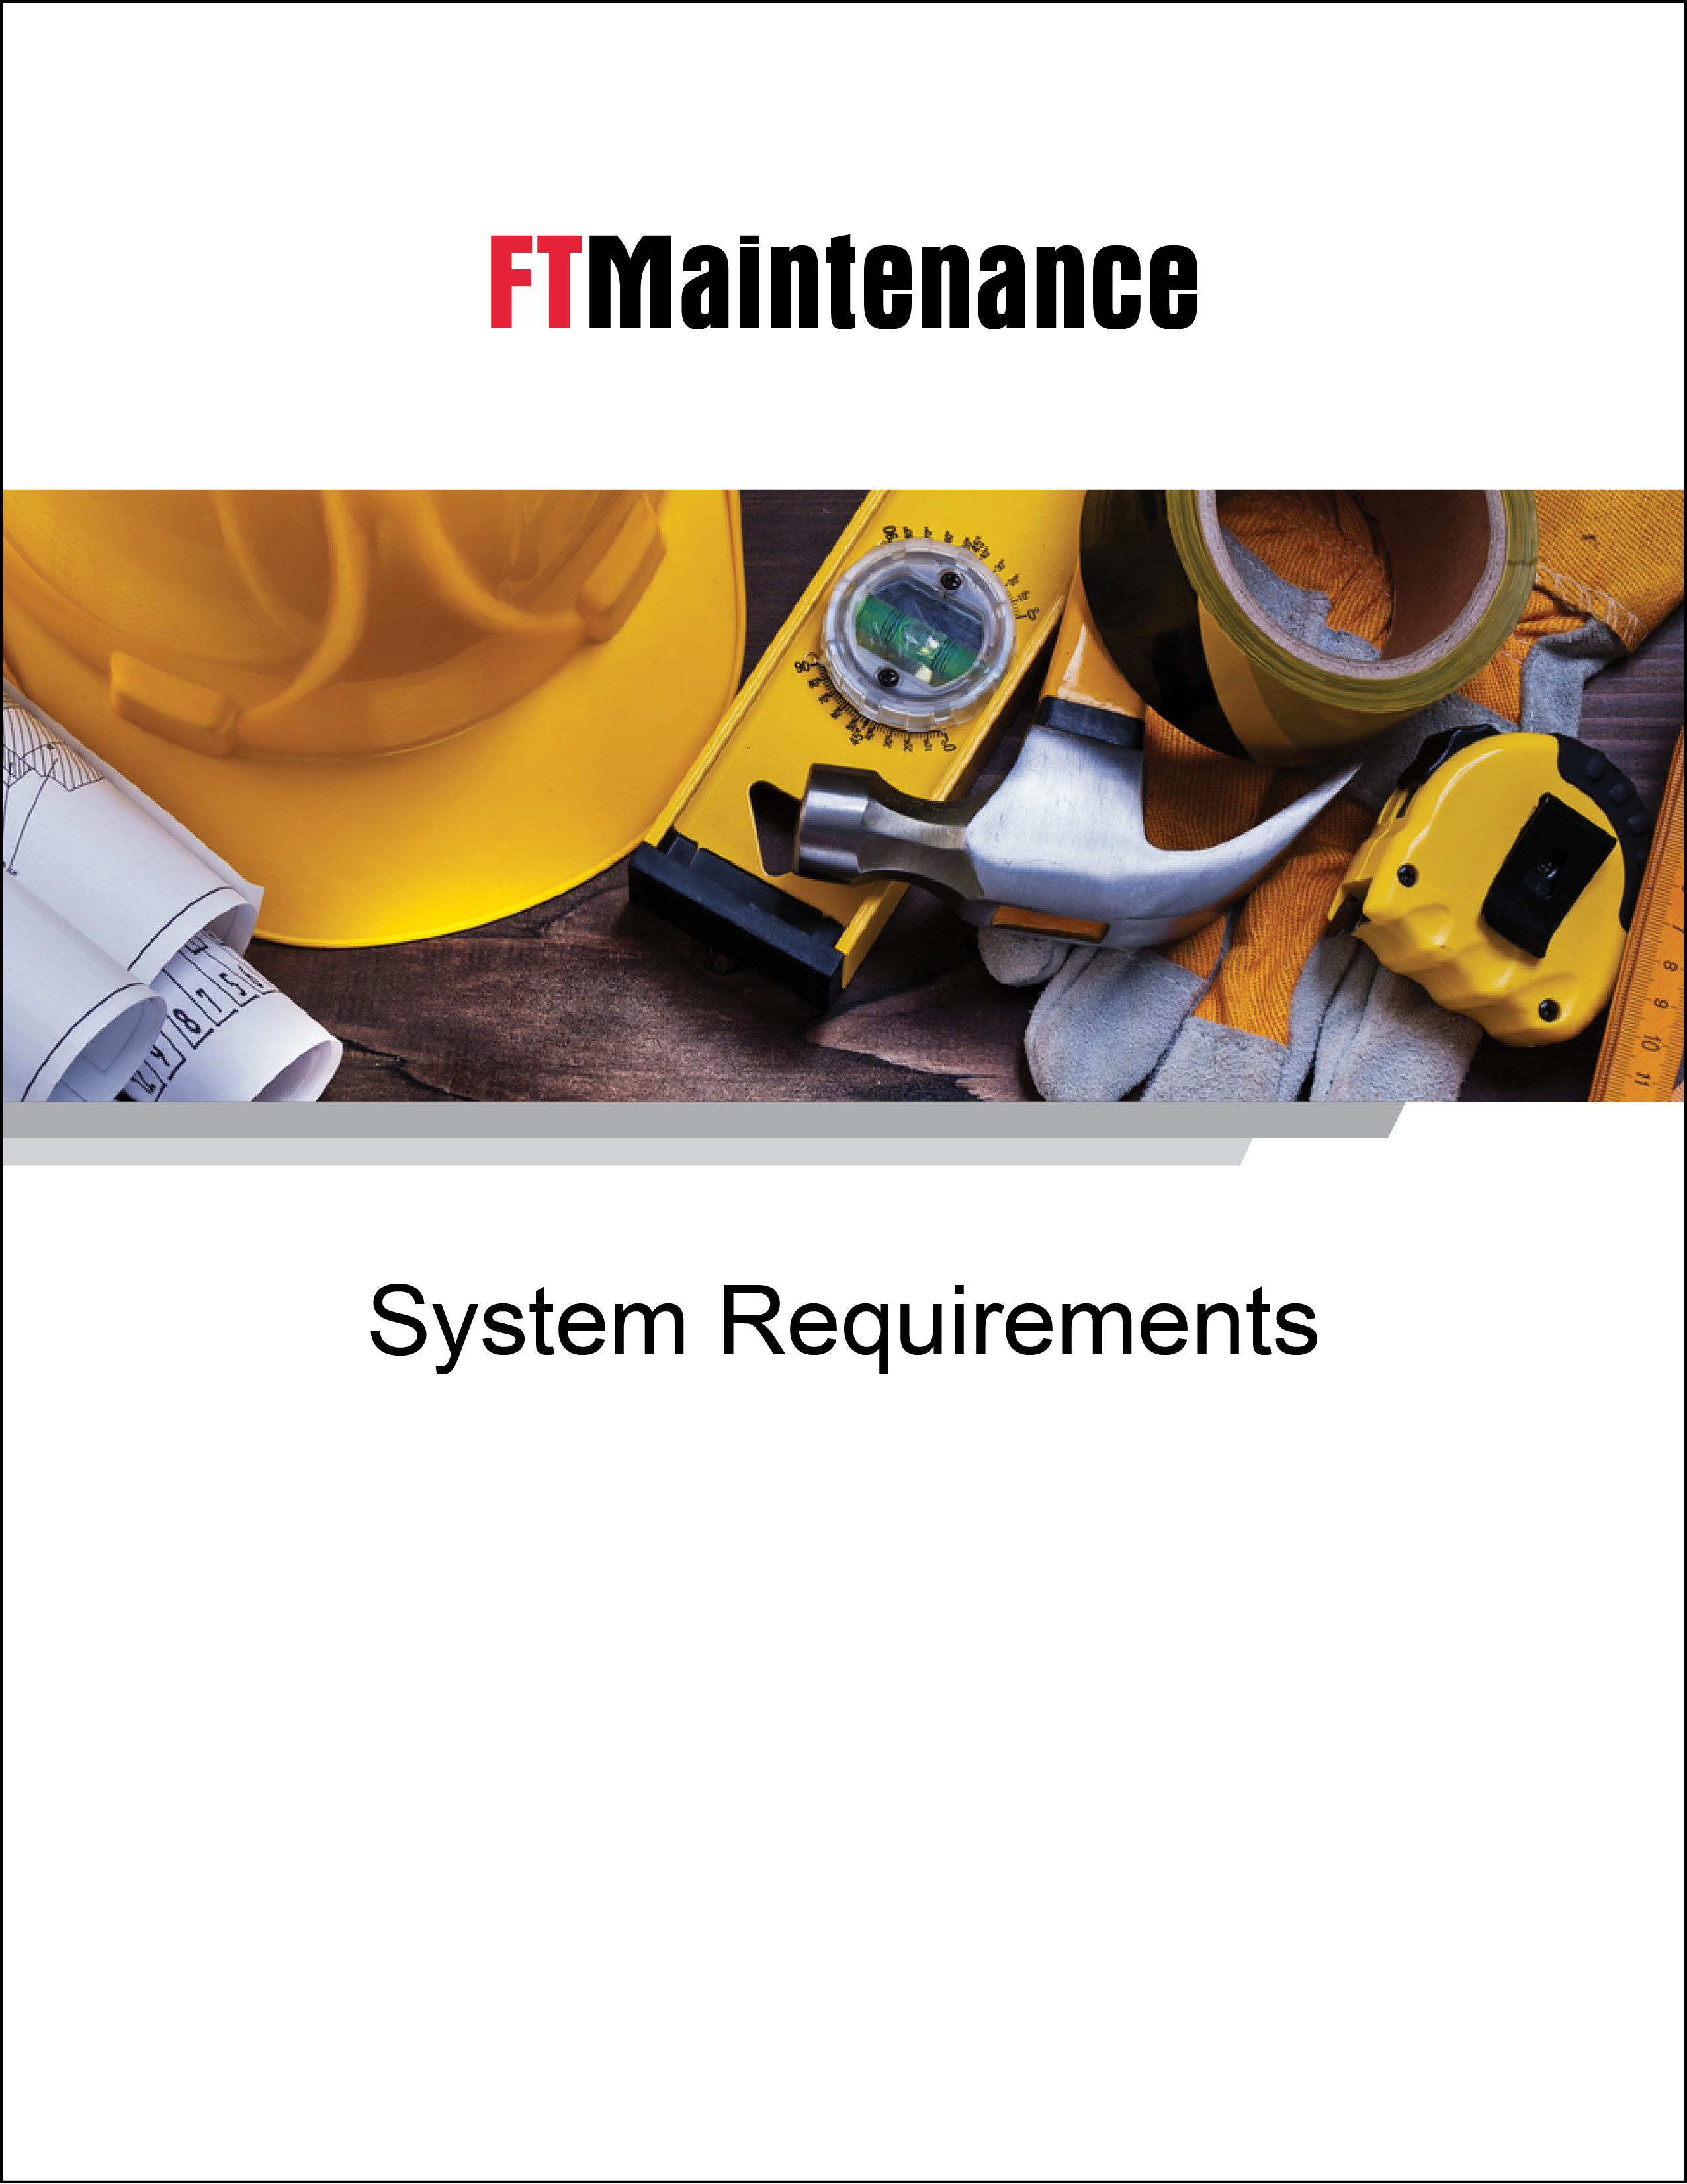 FTMaintenance System Requirements